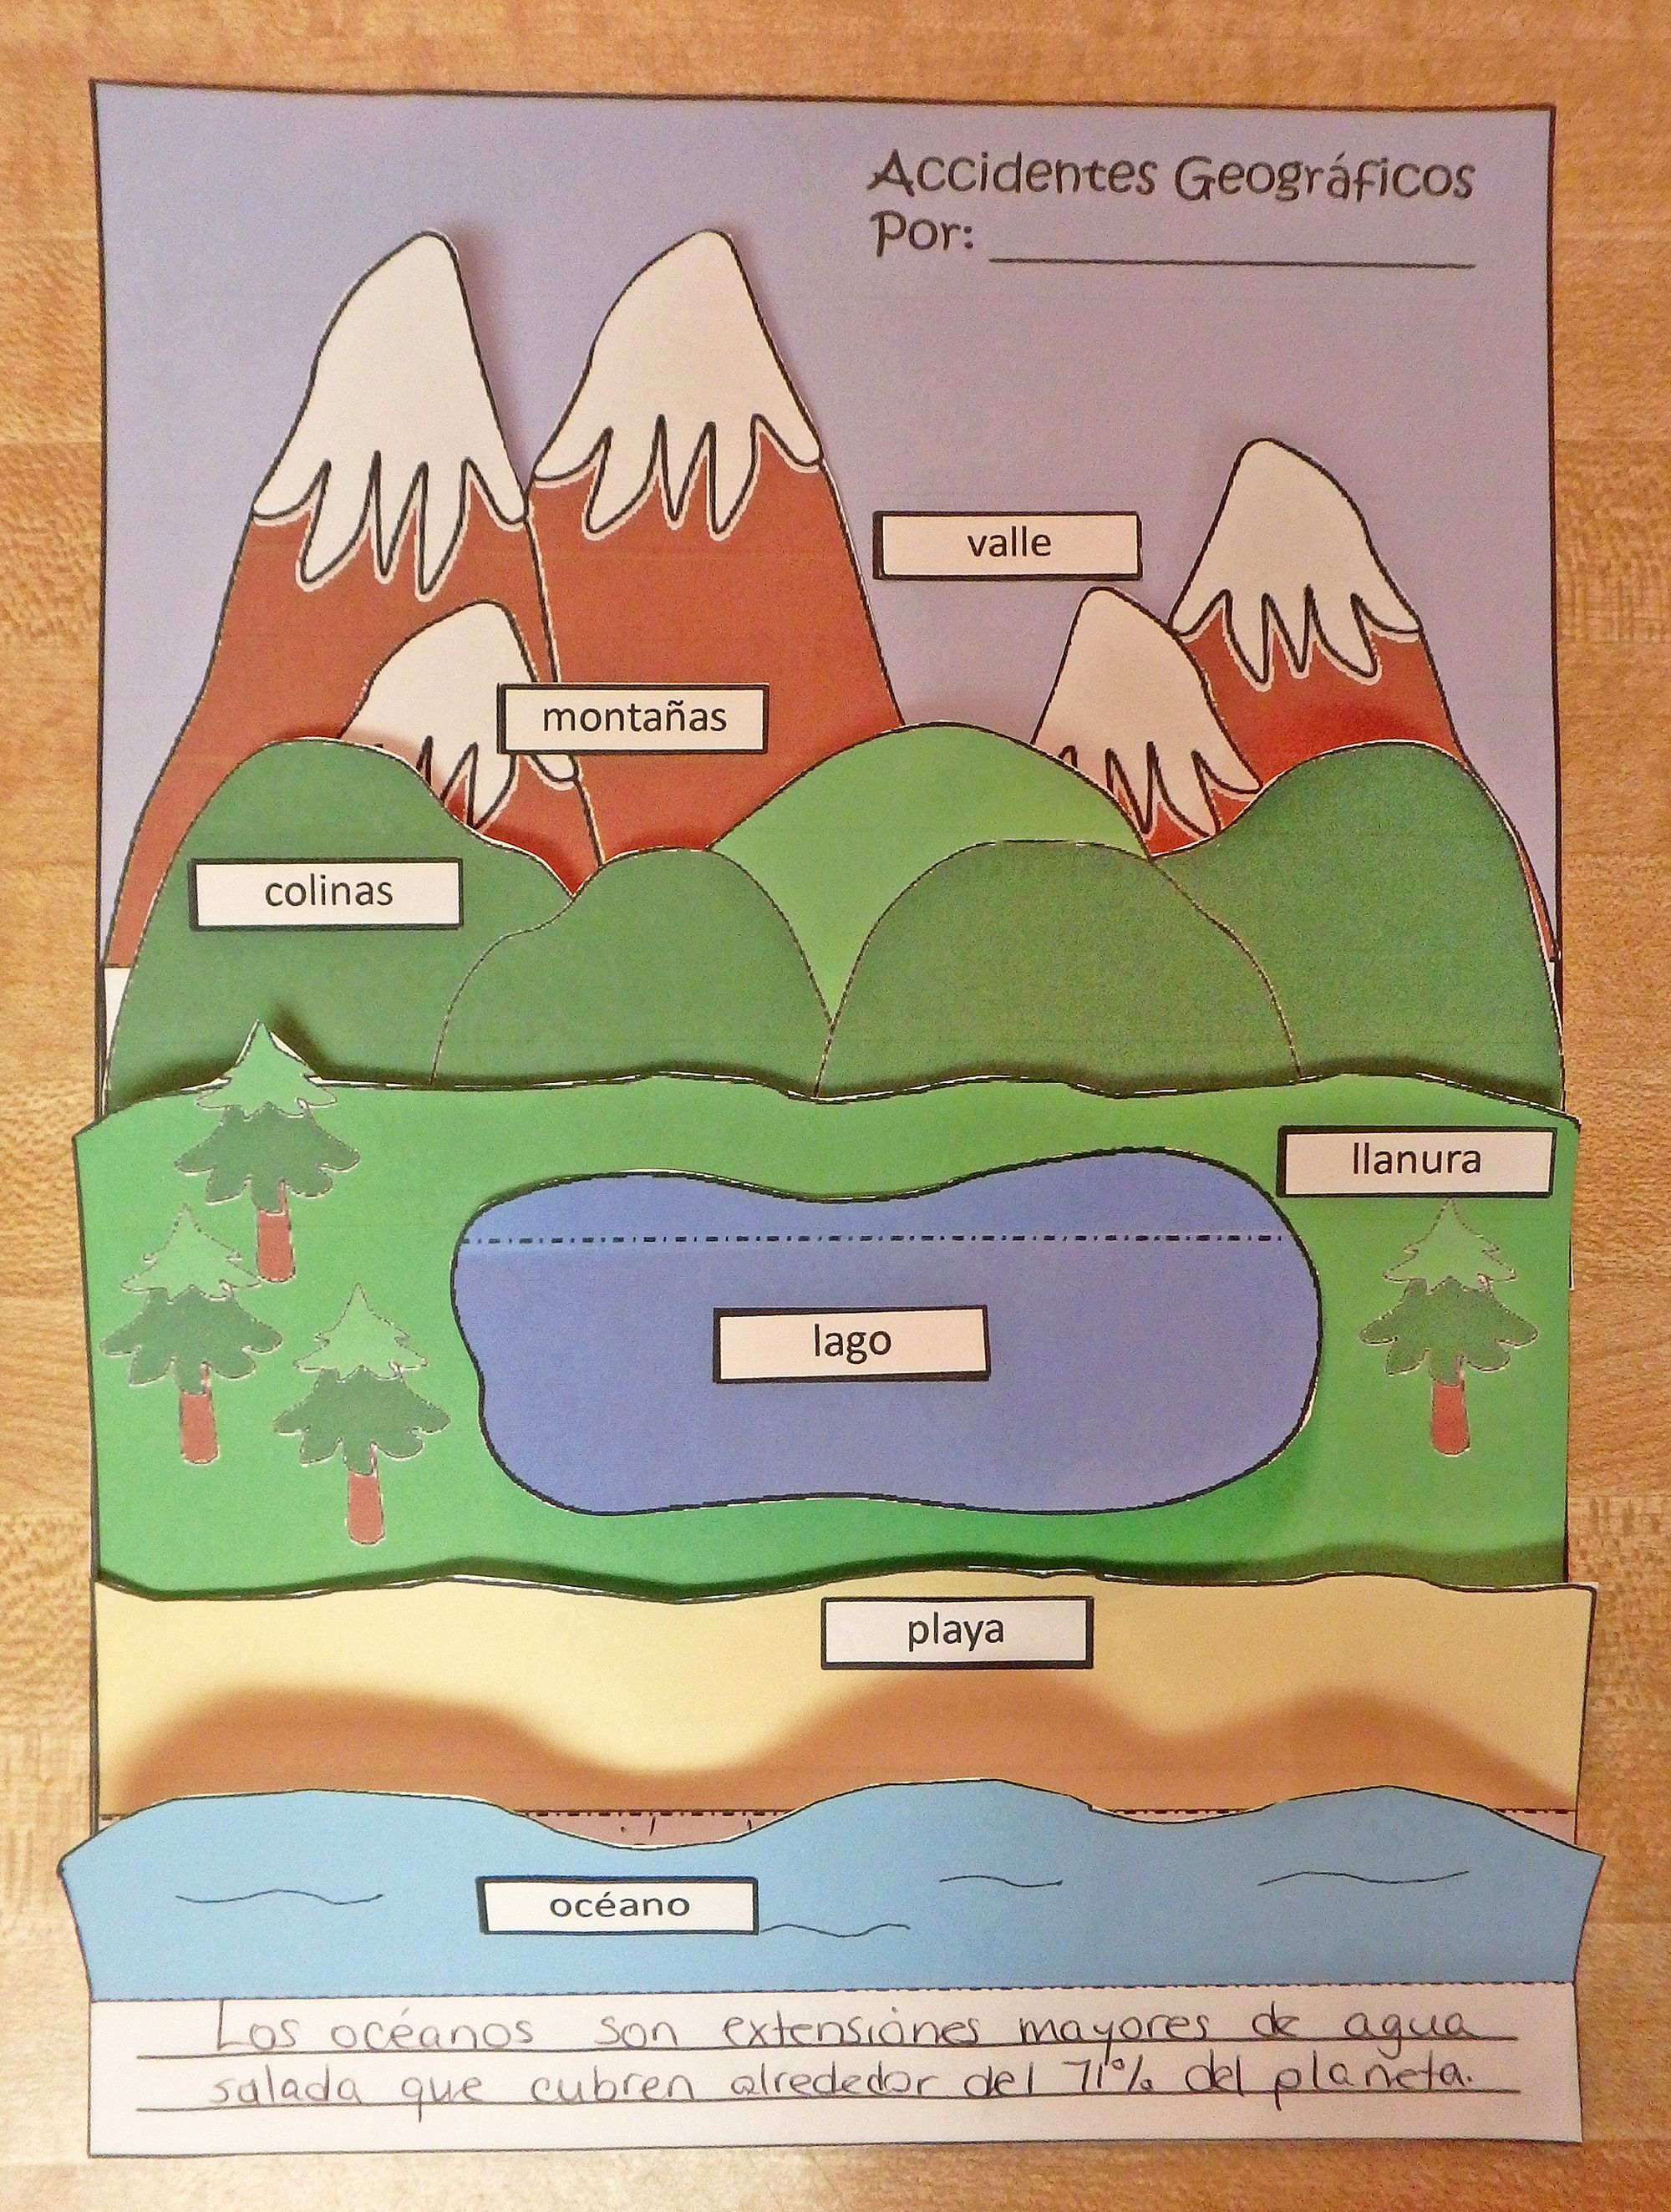 Landforms Accidentes Geograficos Layered Shapebook Your Kids Will Love Making Th Interactive Notebooks Social Studies Teaching Geography Science Activities